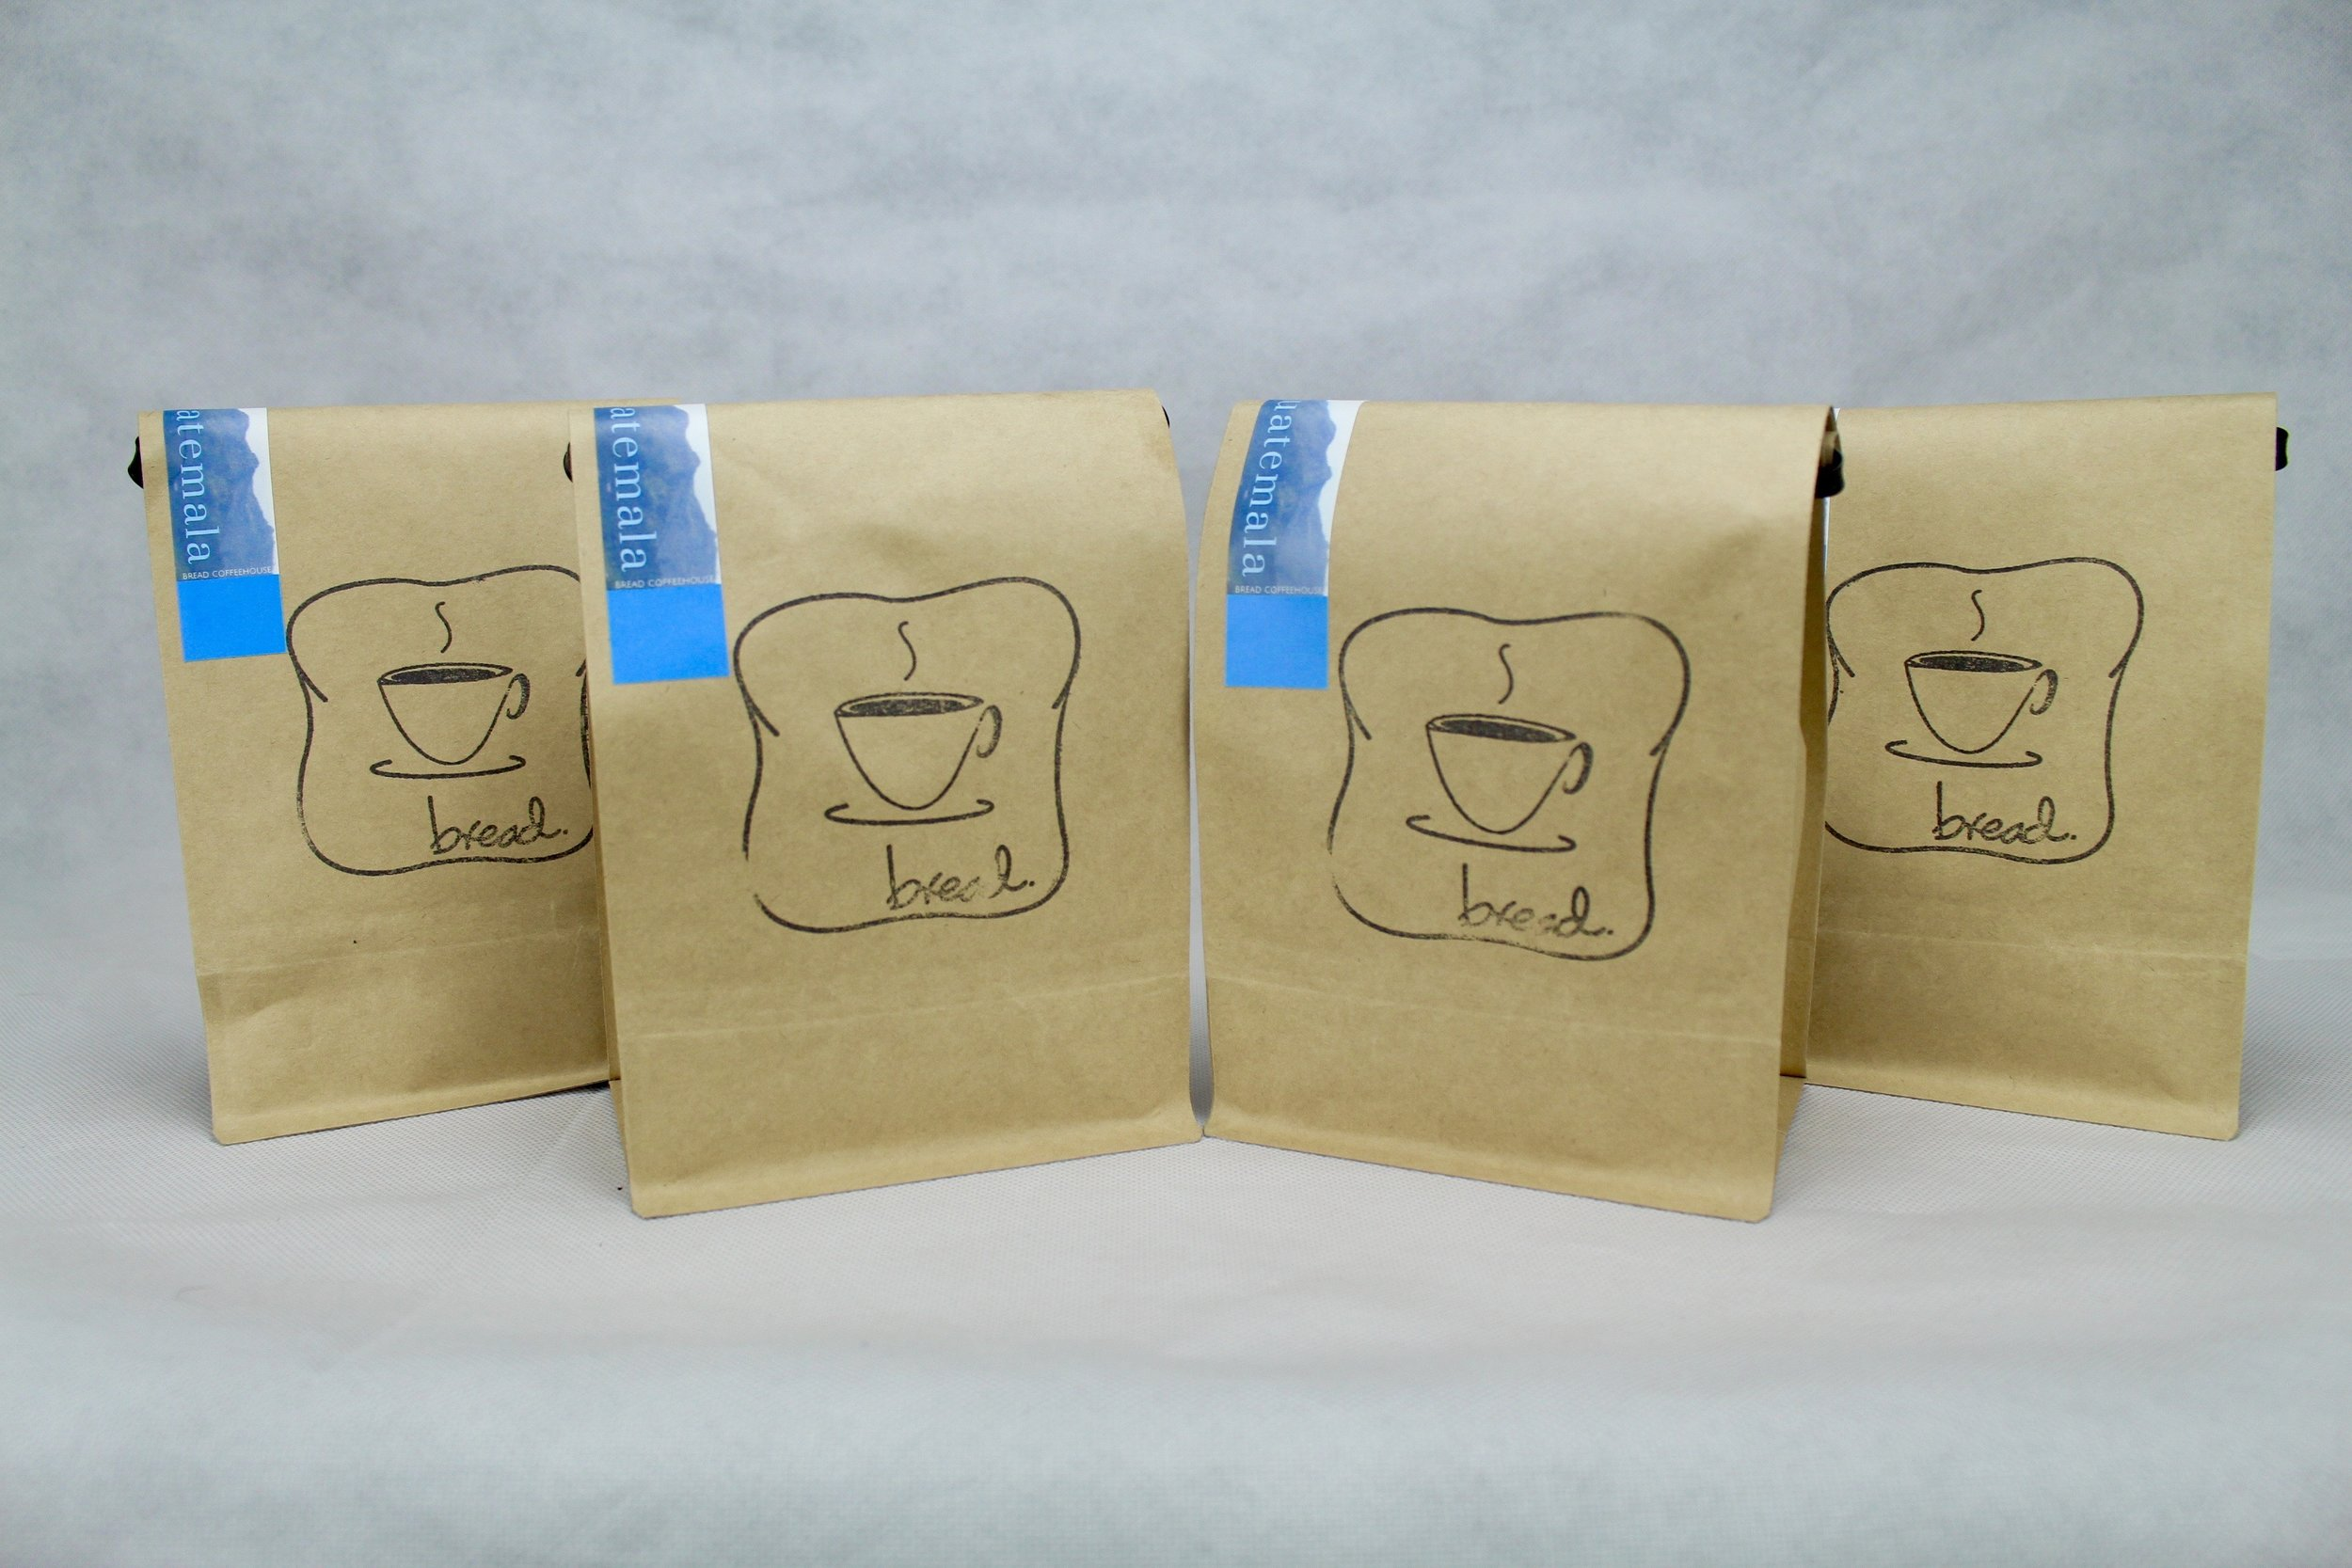 $52 Donation - With your donation we will send you four, 10 oz fresh roasted bags of our seasonal coffee blend. Proceeds used to support and run our Coffeehouses at Emory and Oxford. ($2 to cover Paypal fees)